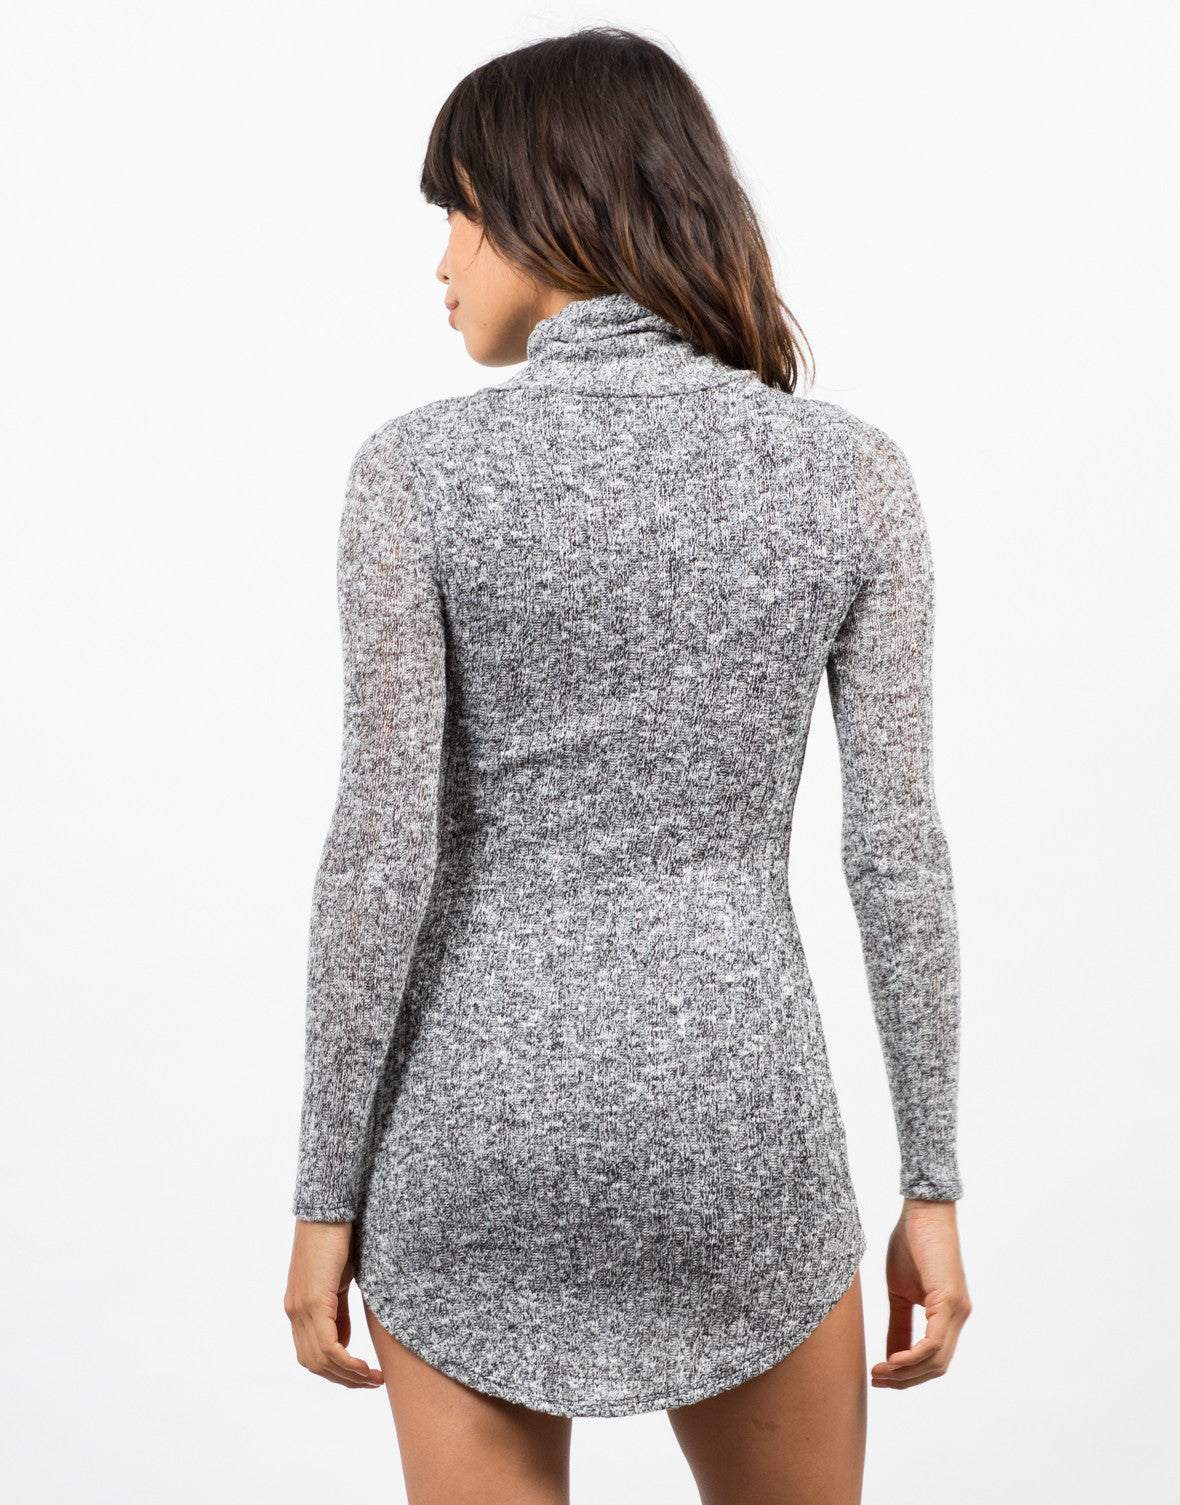 Back View of Marled Knit Sweater Dress